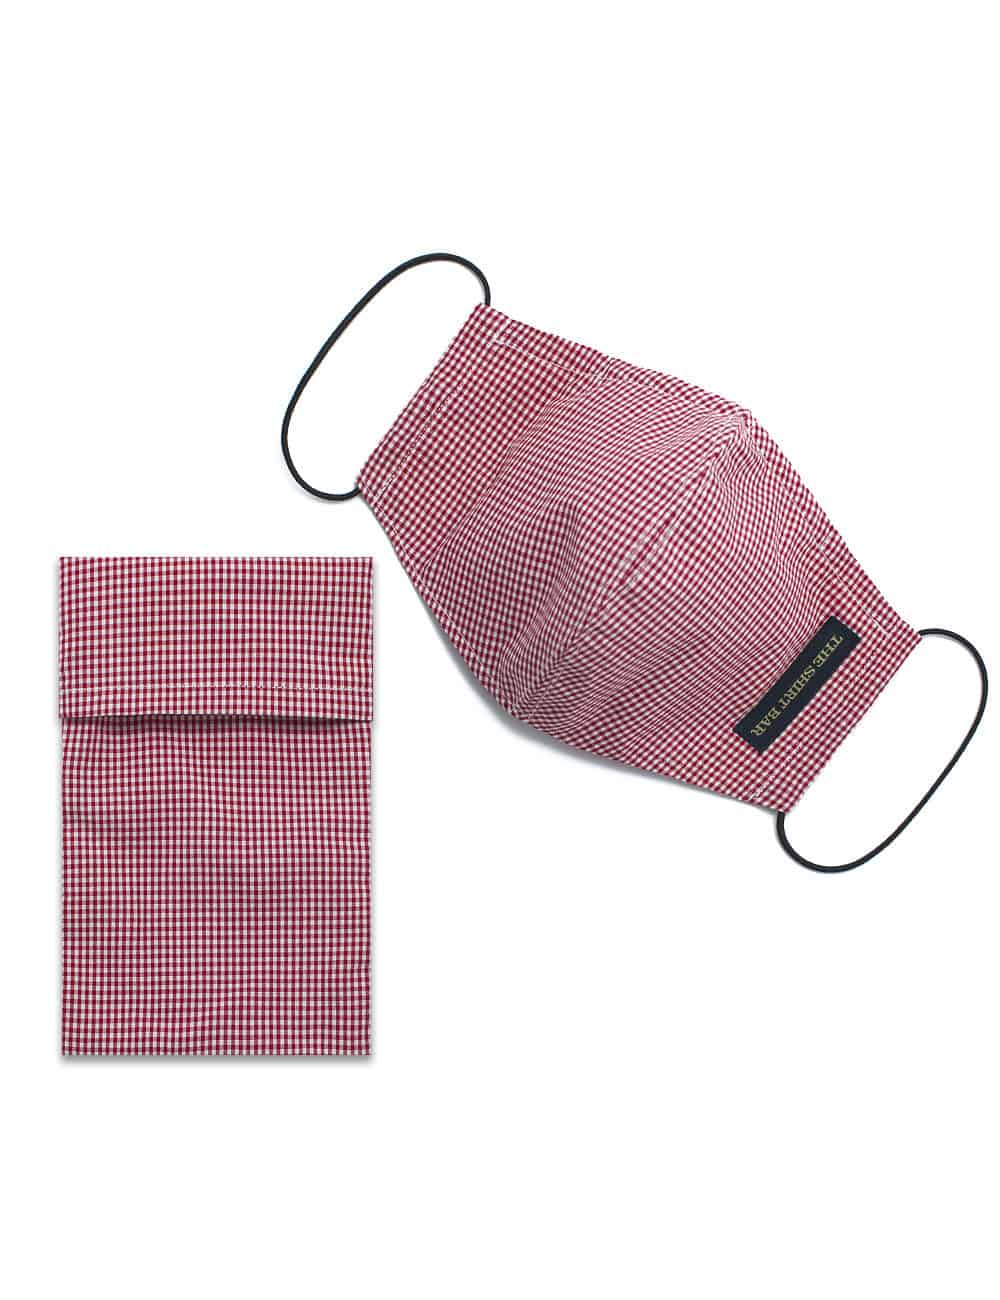 Red House SG Inspired Checks Reusable Mask with Pouch - FM23.1